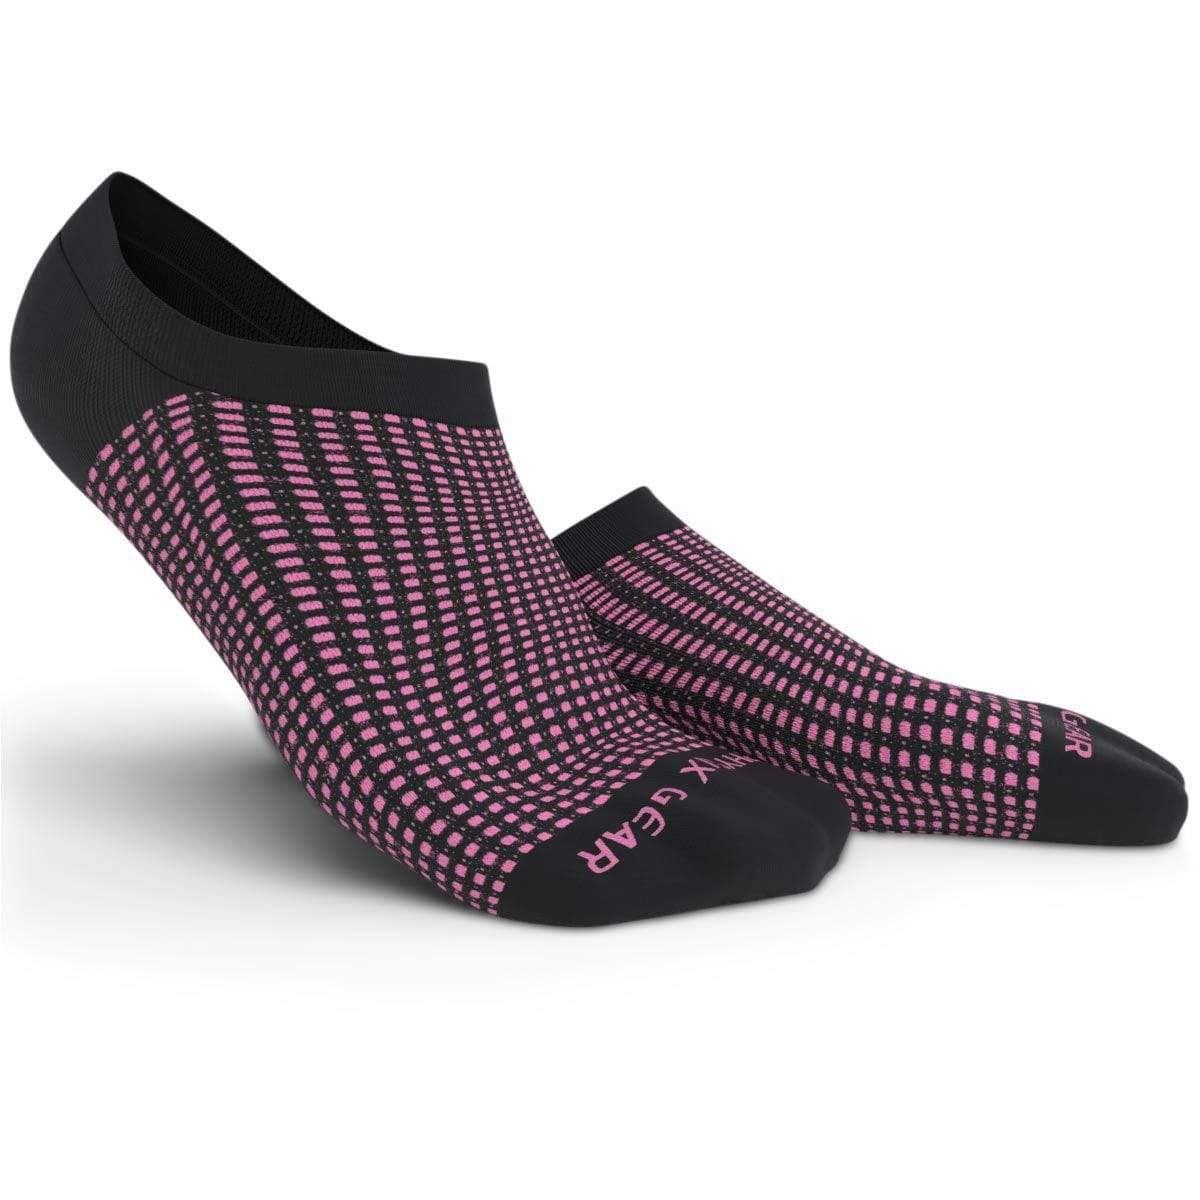 No Show Socks - Black & Pink 3 Pairs (Ankle High)-Physix Gear Sport